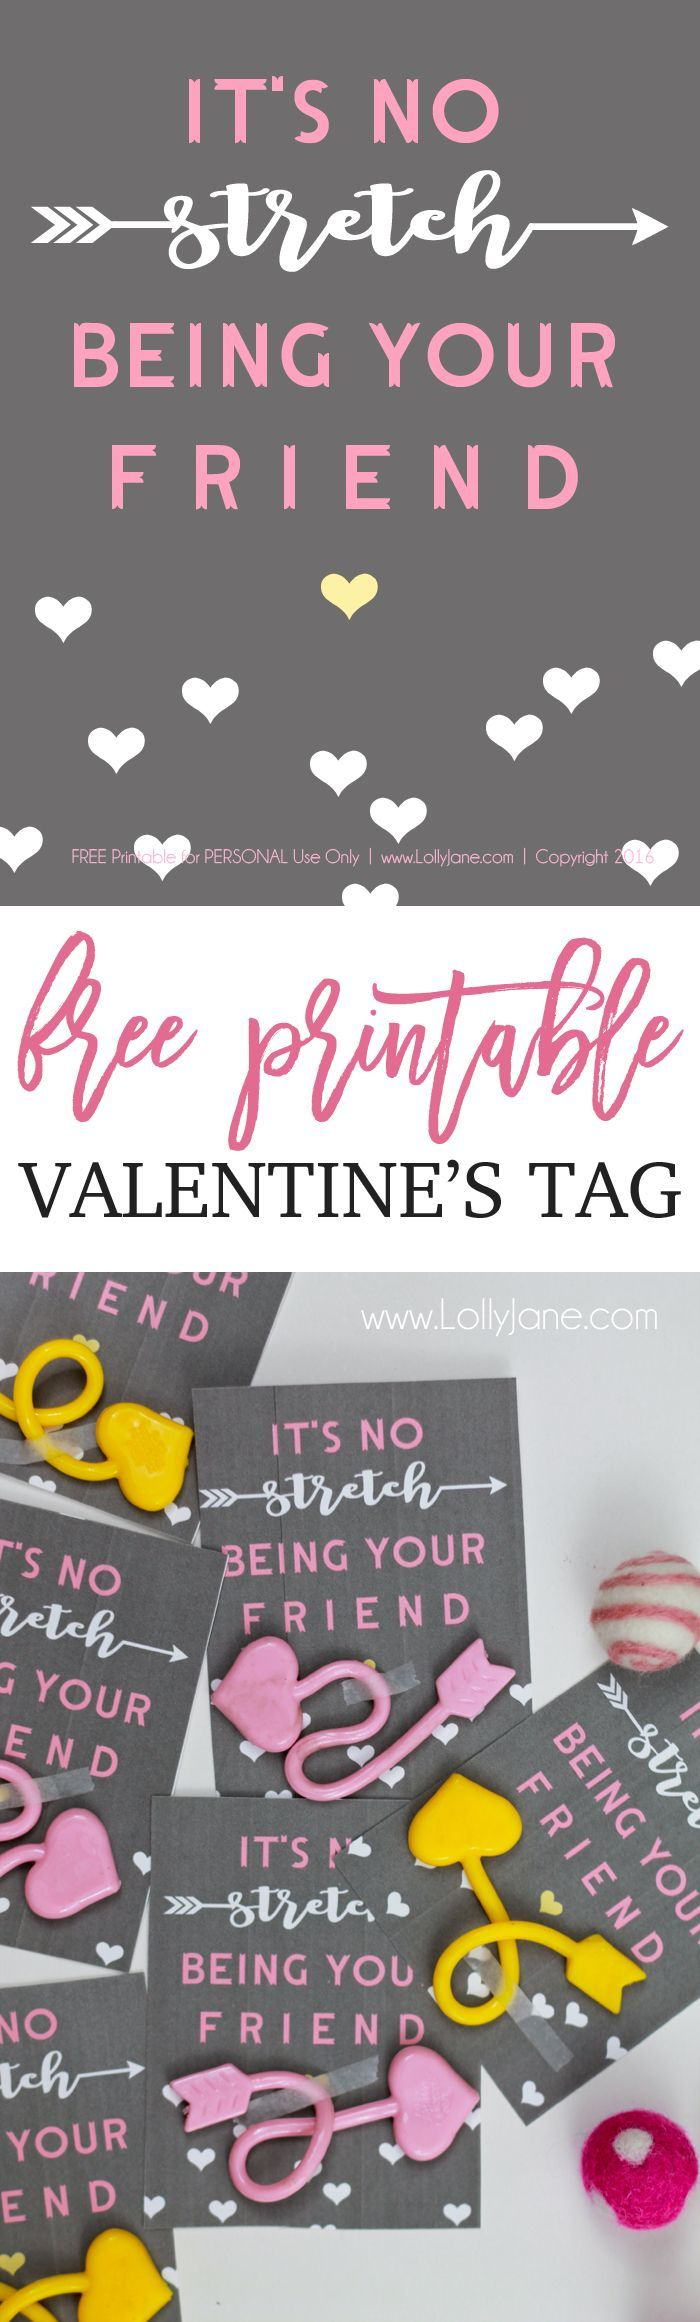 """""""It's no STRETCH being your friend"""" FREE Printable Valentine's Day Tag. Attach to sticky hand, arrow or gum for an easy gift to pass out!"""